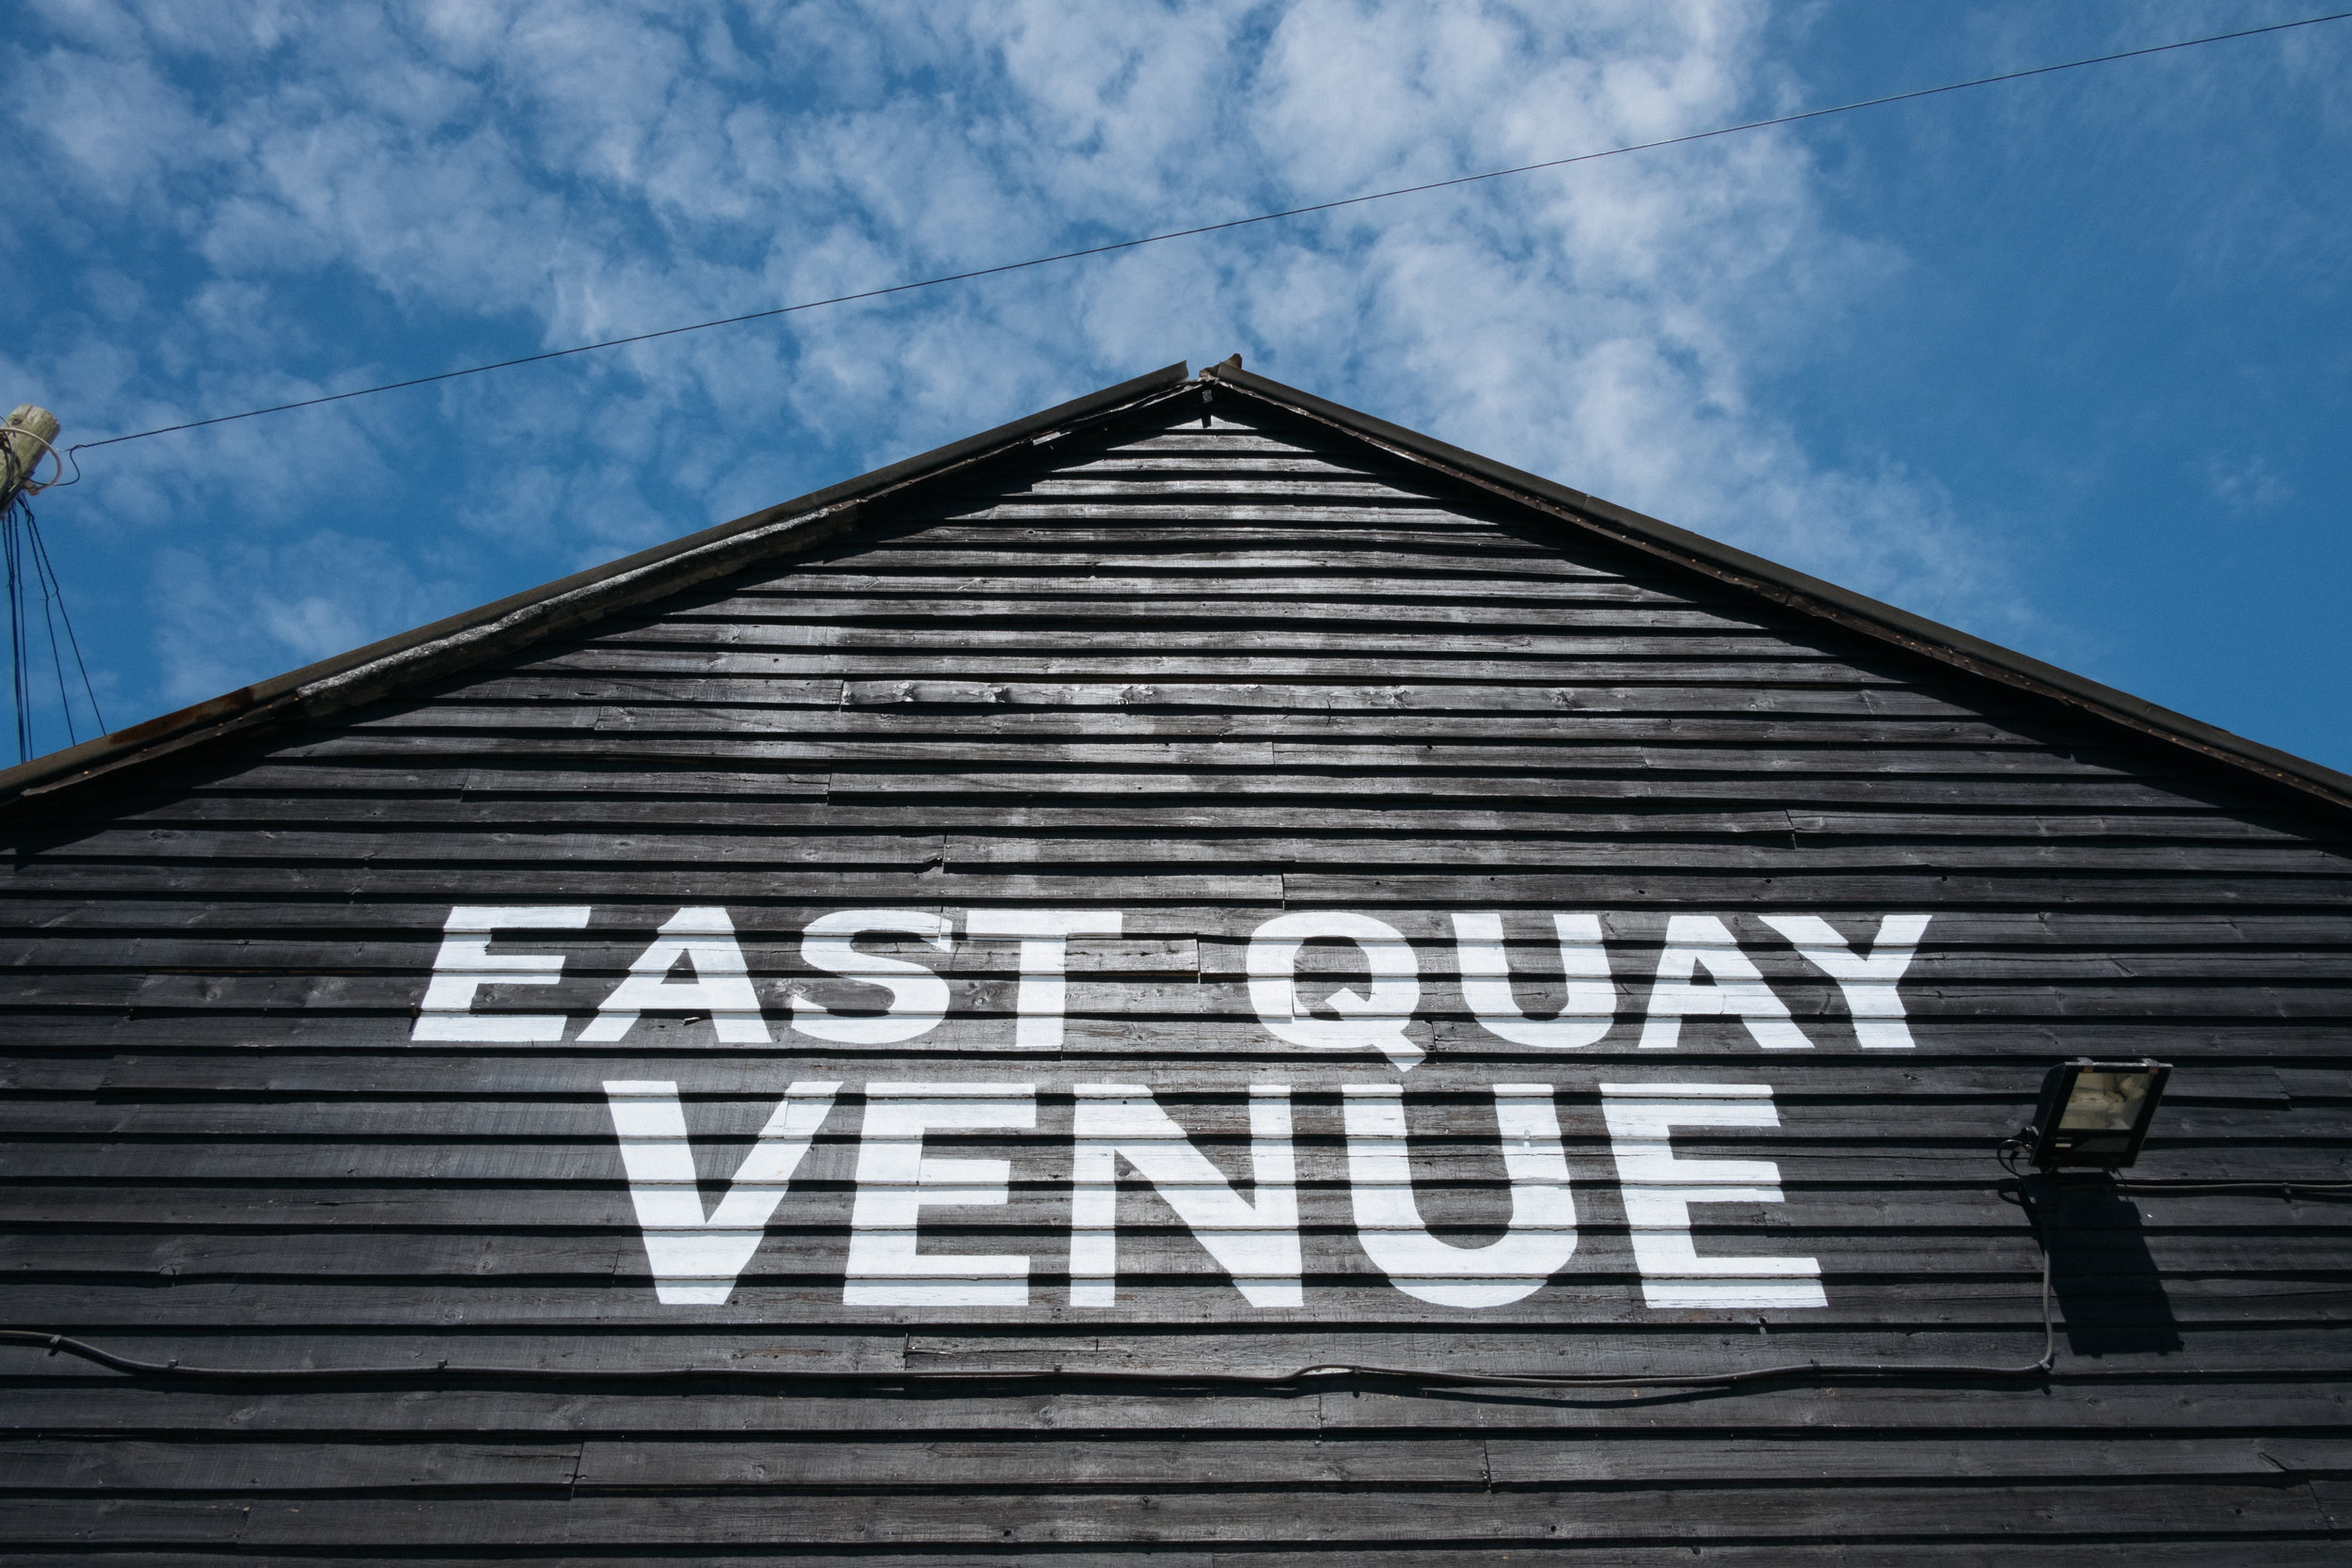 East Quay, Whitstable, Kent